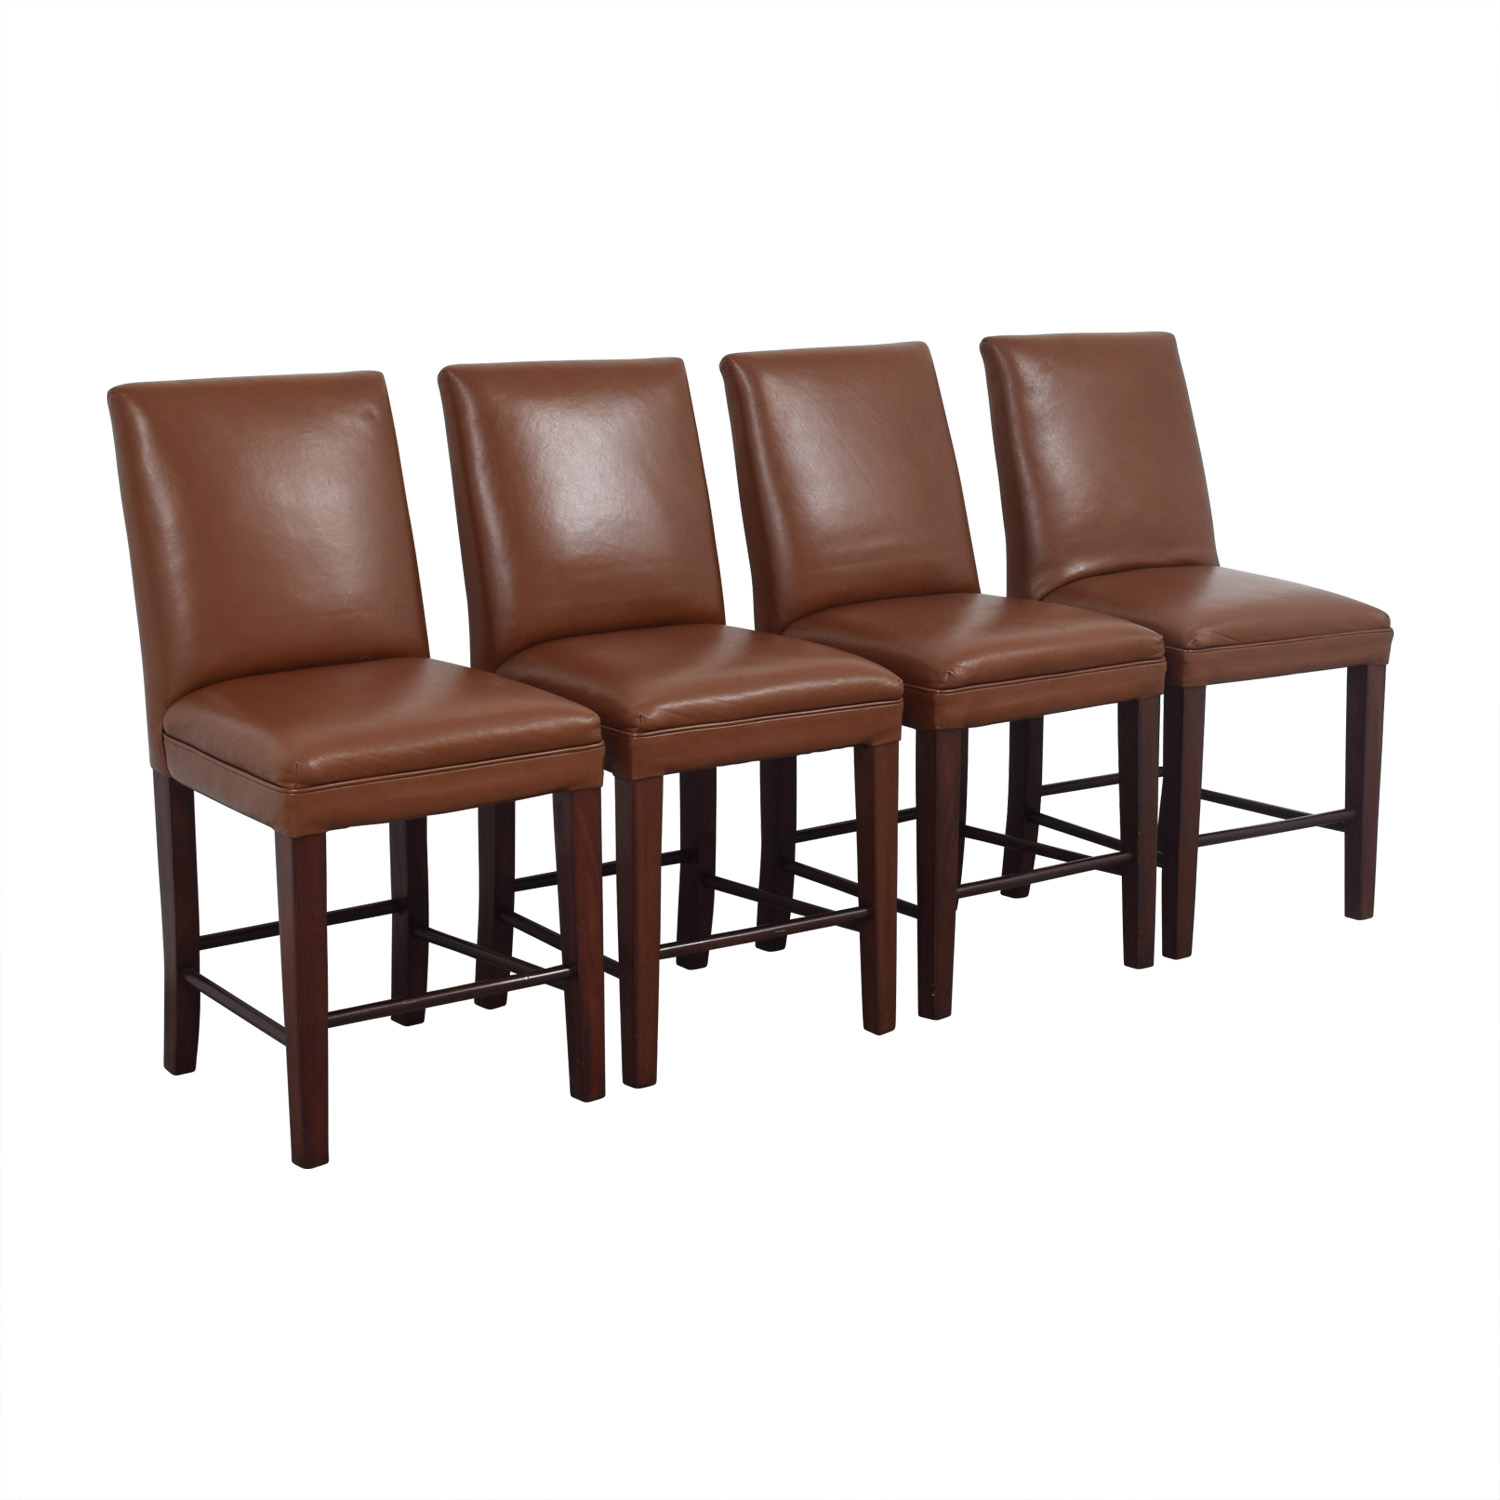 ... Cognac Leather Dining Chairs Brown ...